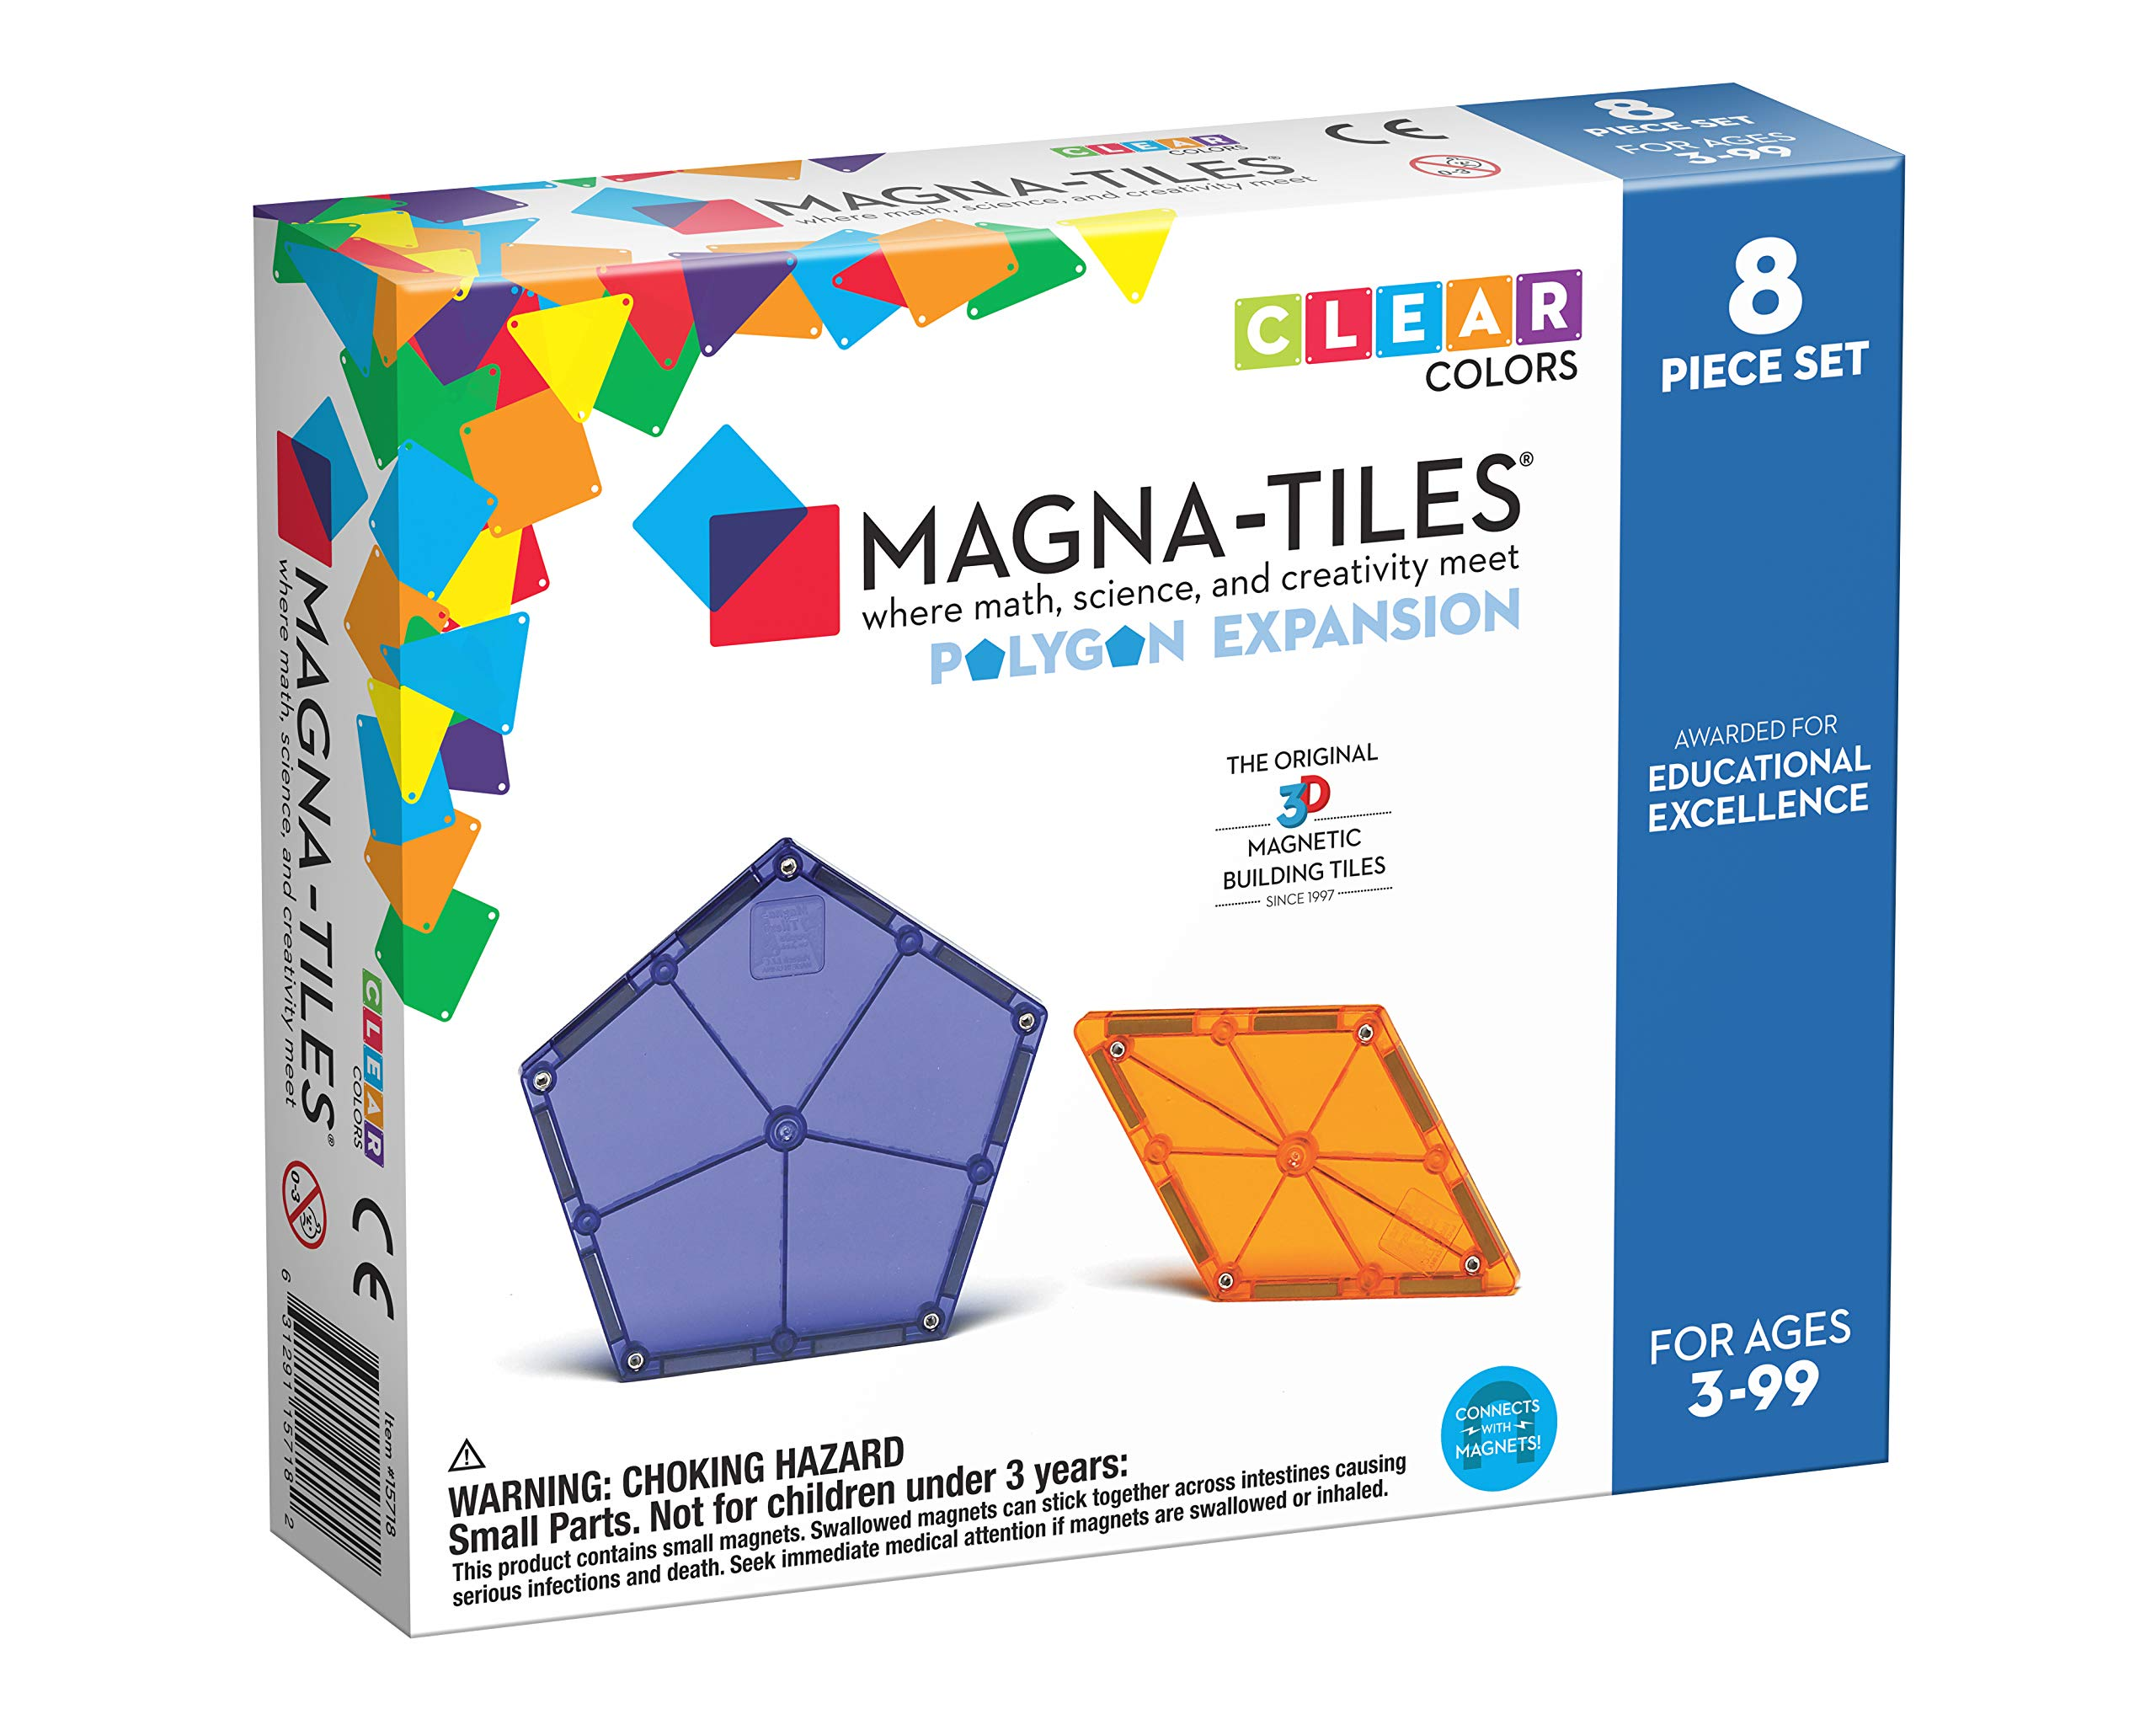 Magna Tiles Polygons Expansion Set, The Original Magnetic Building Tiles for Creative Open-Ended Play, Educational Toys for Children Ages 3 Years + (8 Pieces) (15718)